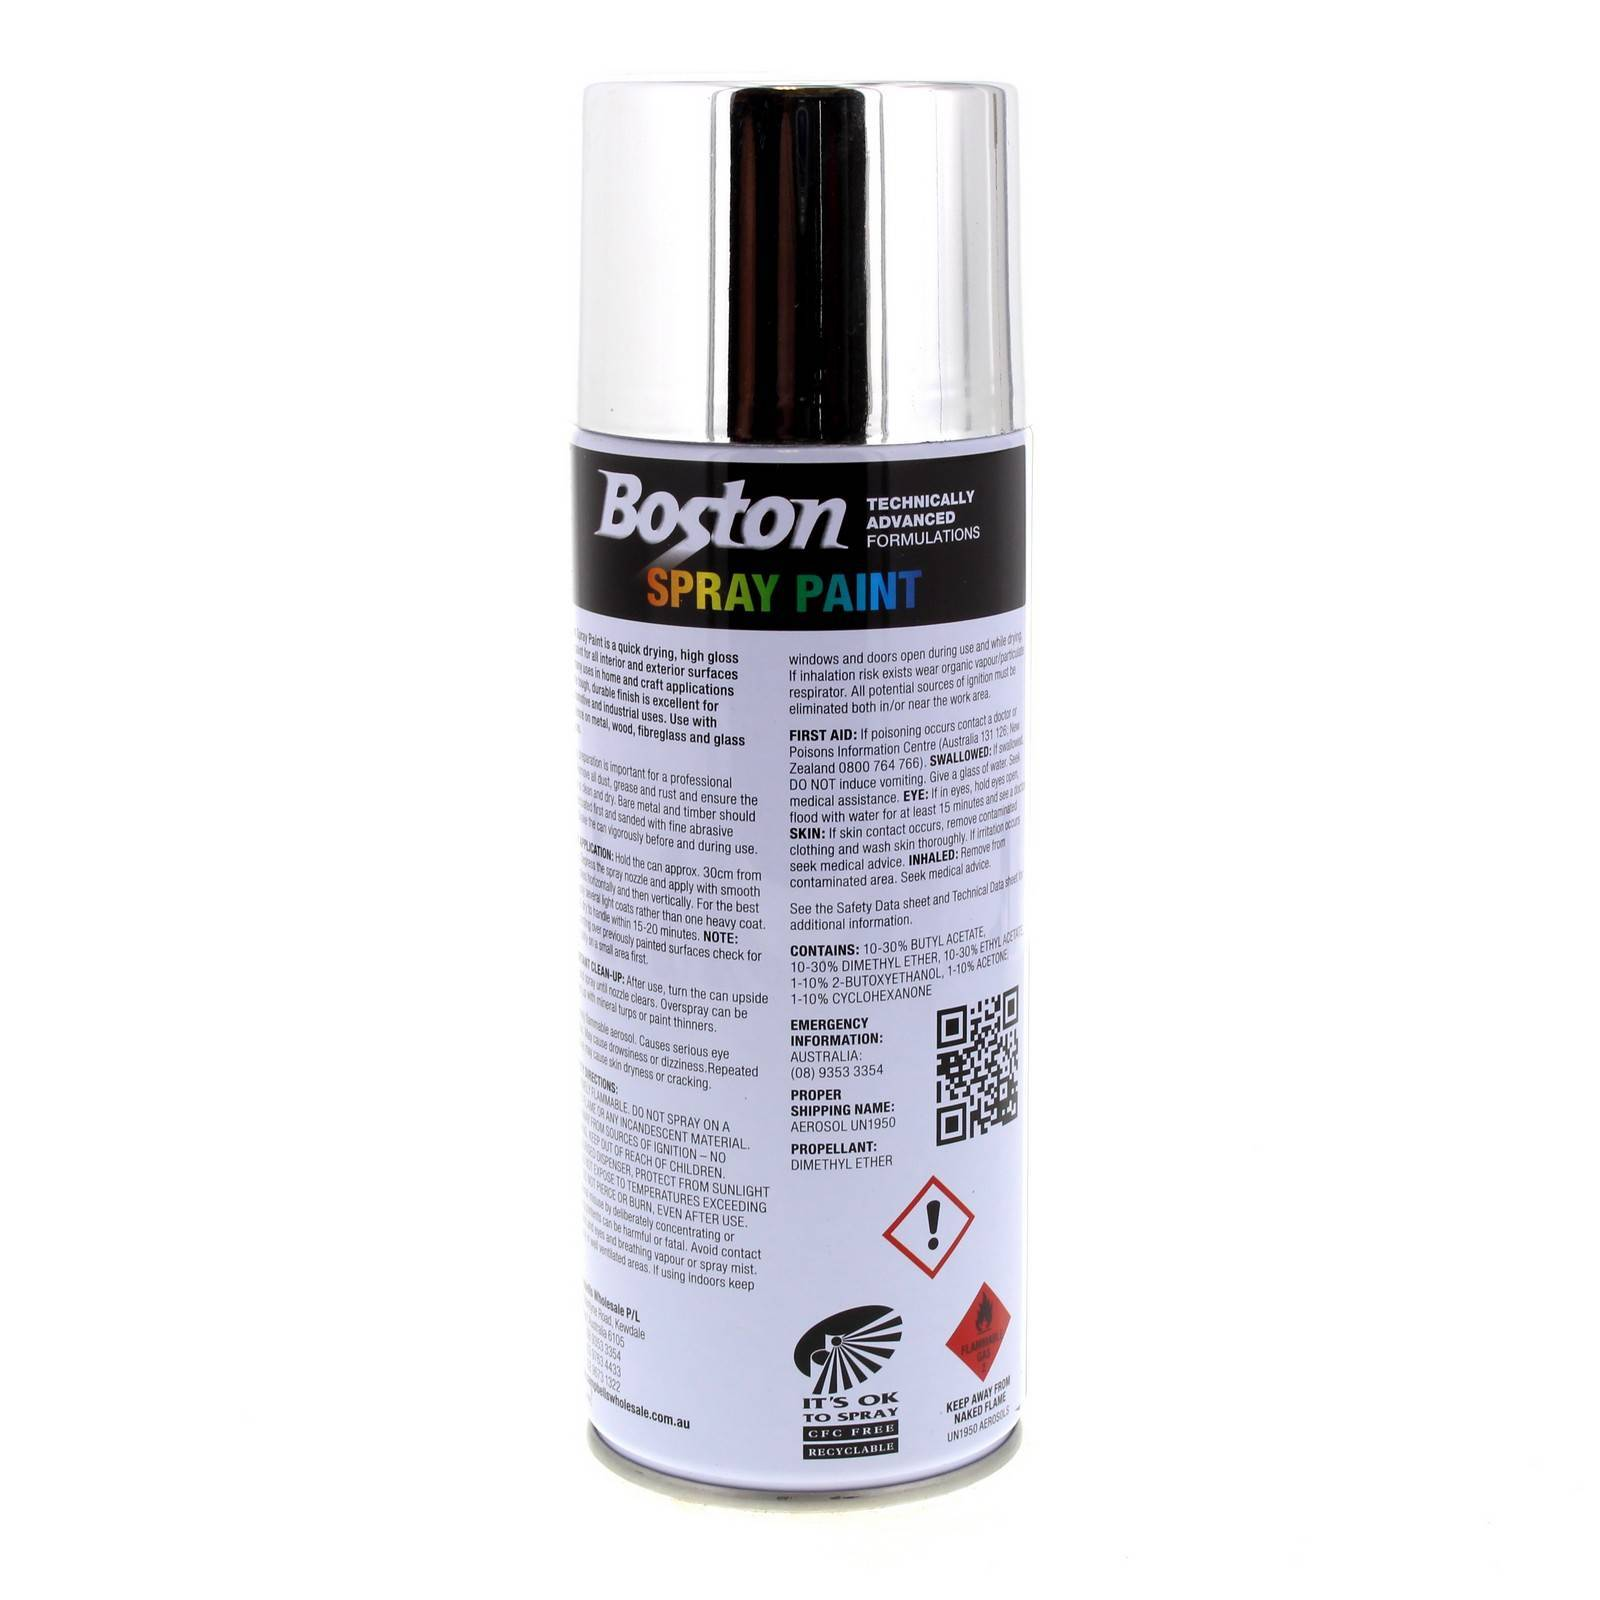 Details about Bright Chrome Spray Paint Can 250g Boston Quick Drying Rust  Prevention